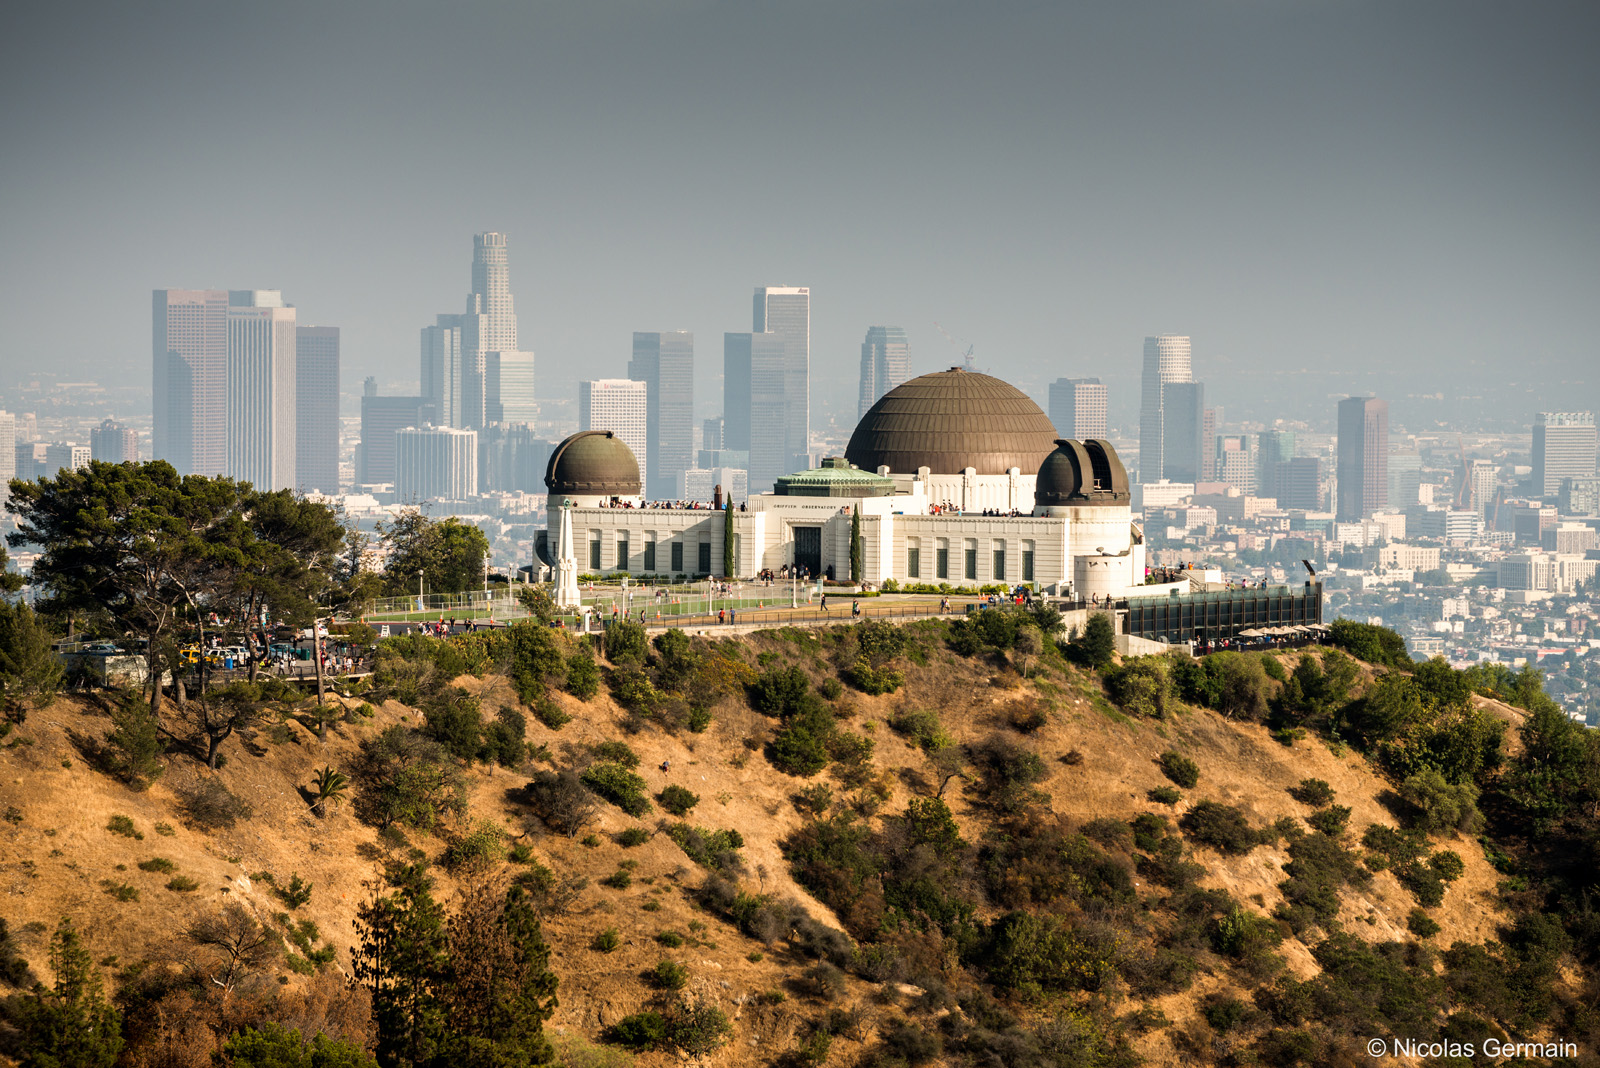 Griffith Observatory et les buildings de downtown Los Angeles en arrière-plan